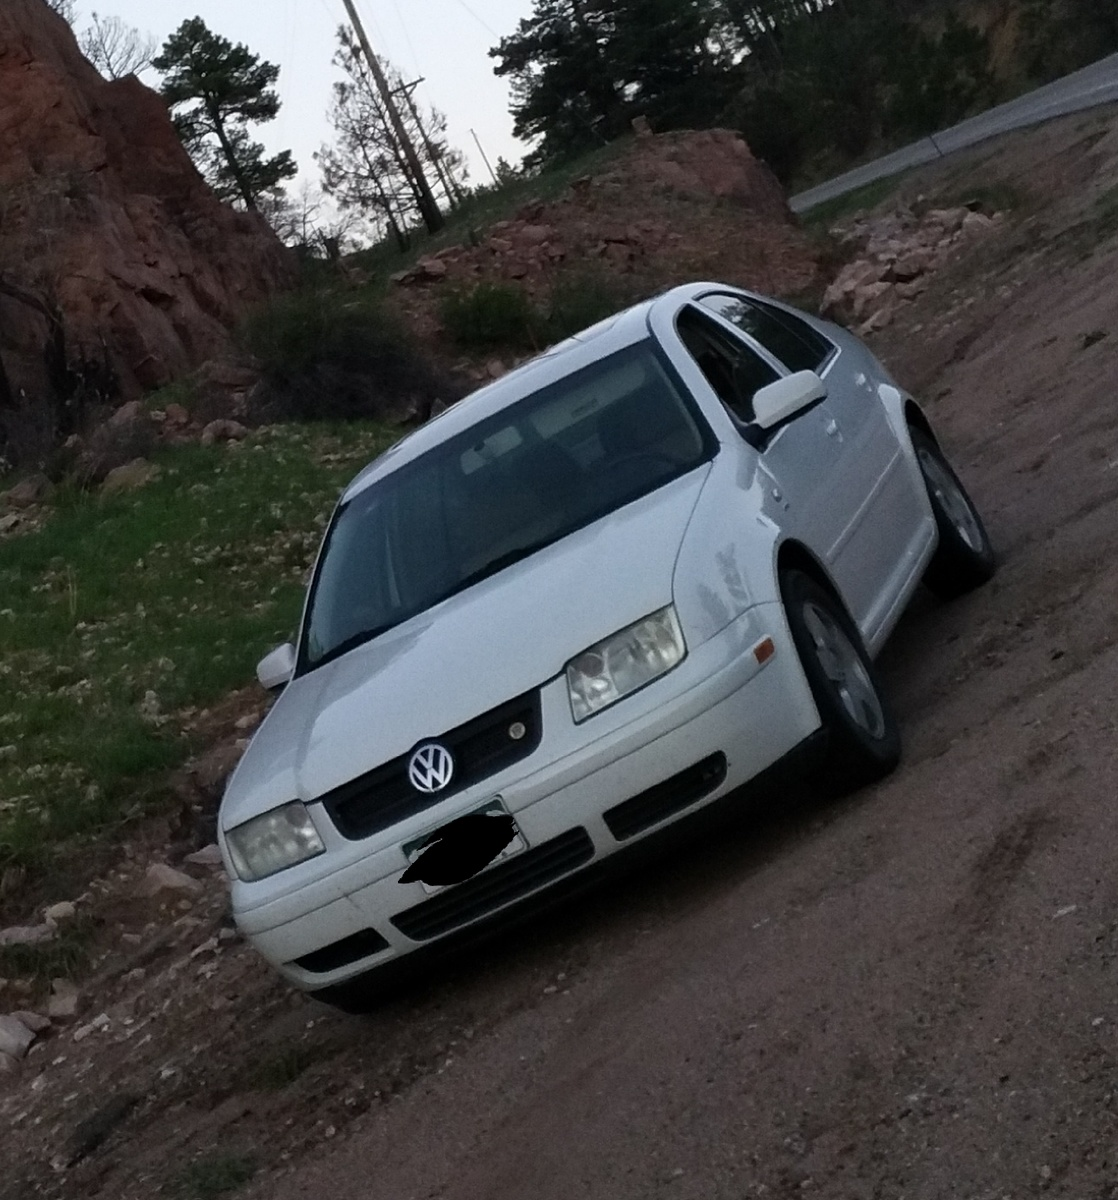 Volkswagen Jetta Parts >> Volkswagen Jetta Questions Can I Use 2002 2004 Parts For A